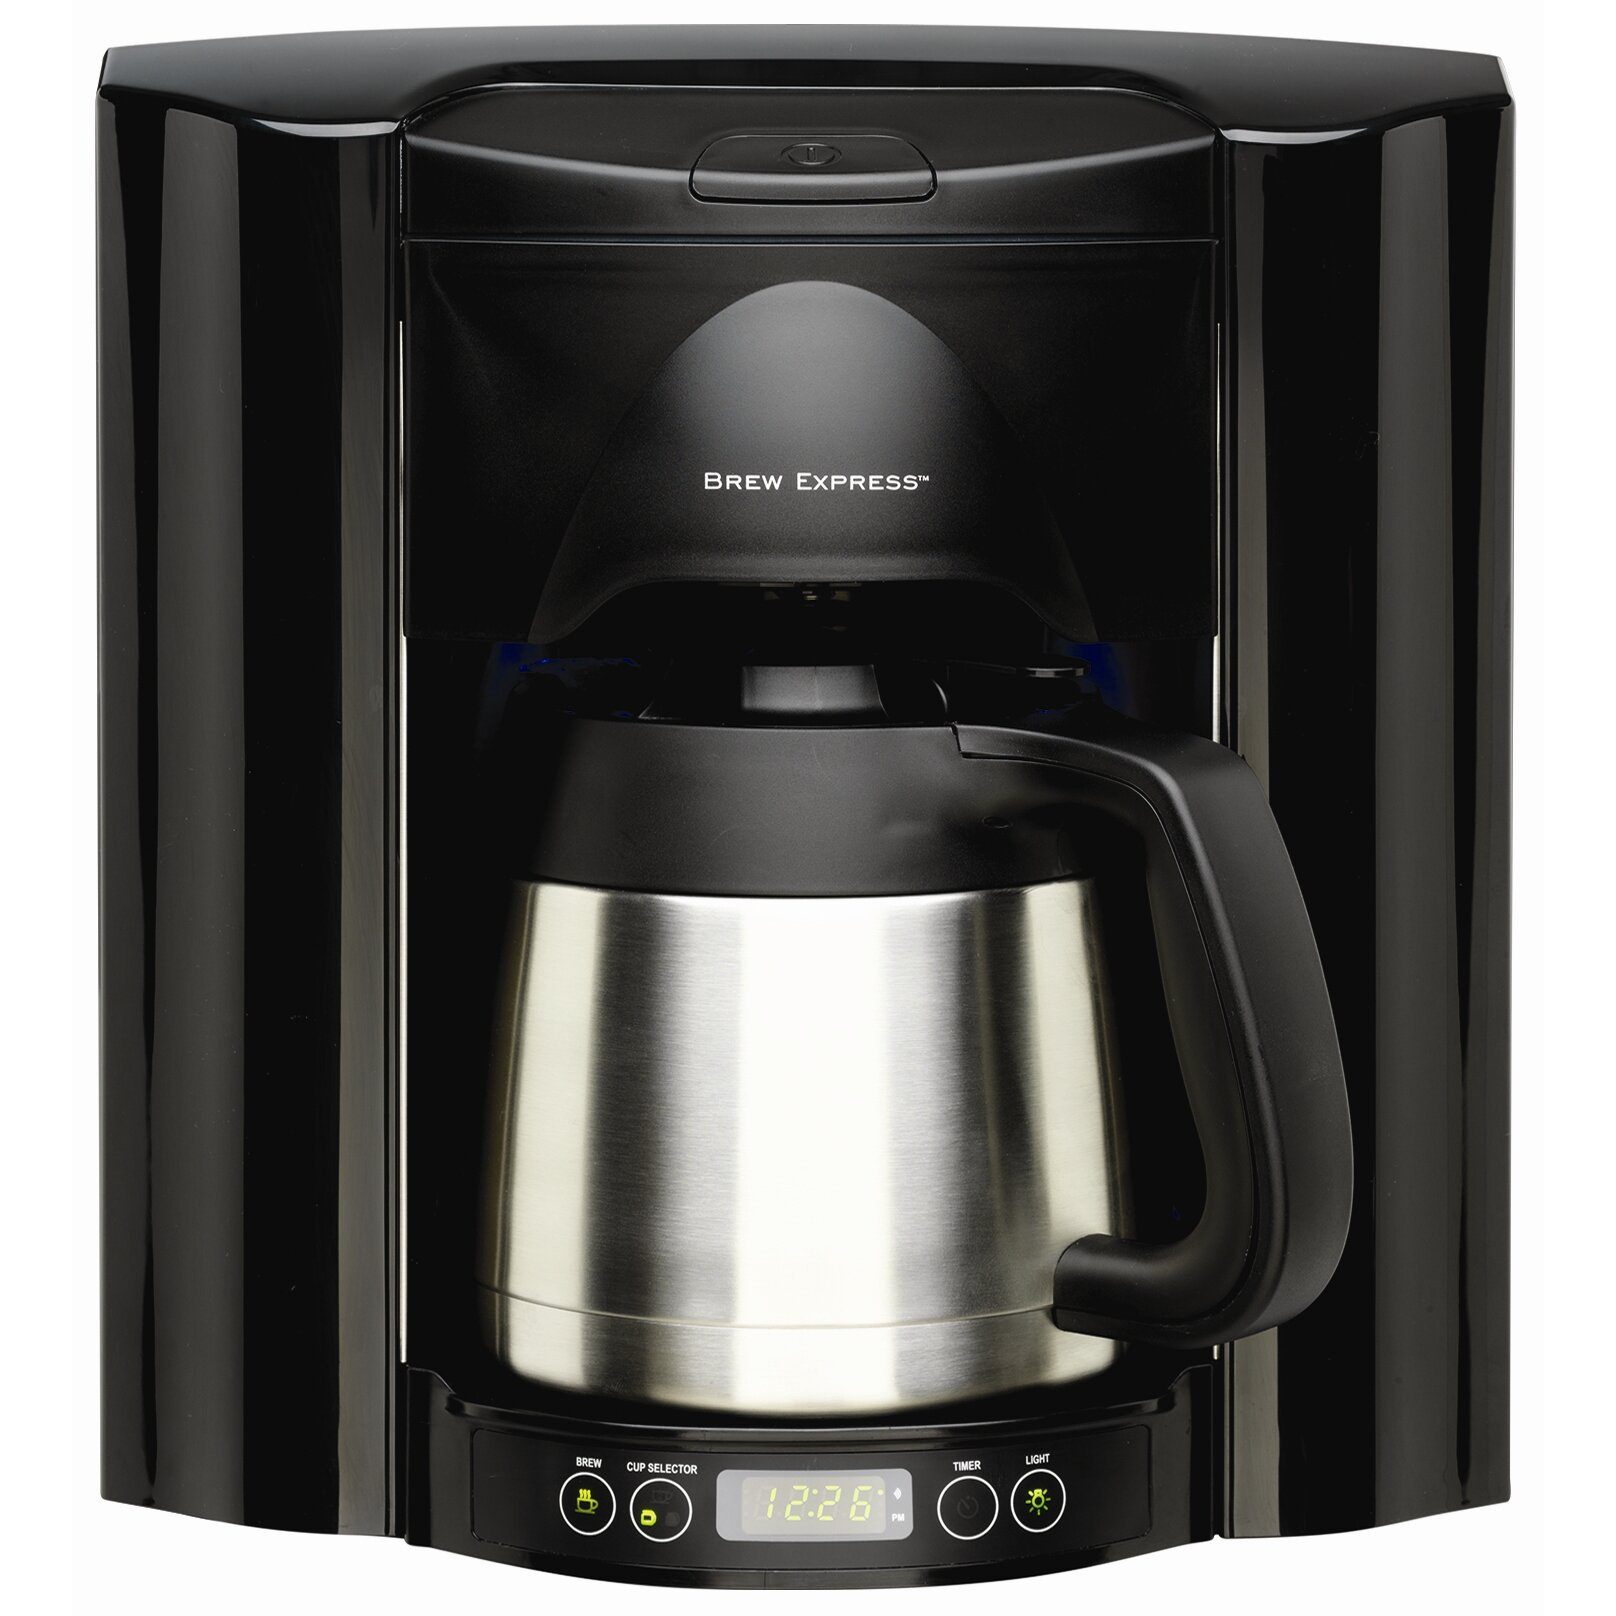 Best Coffee Maker Under Usd 40 : Brew Express 10 Cup Built-In Self-Filling Coffee and Hot Beverage System & Reviews Wayfair